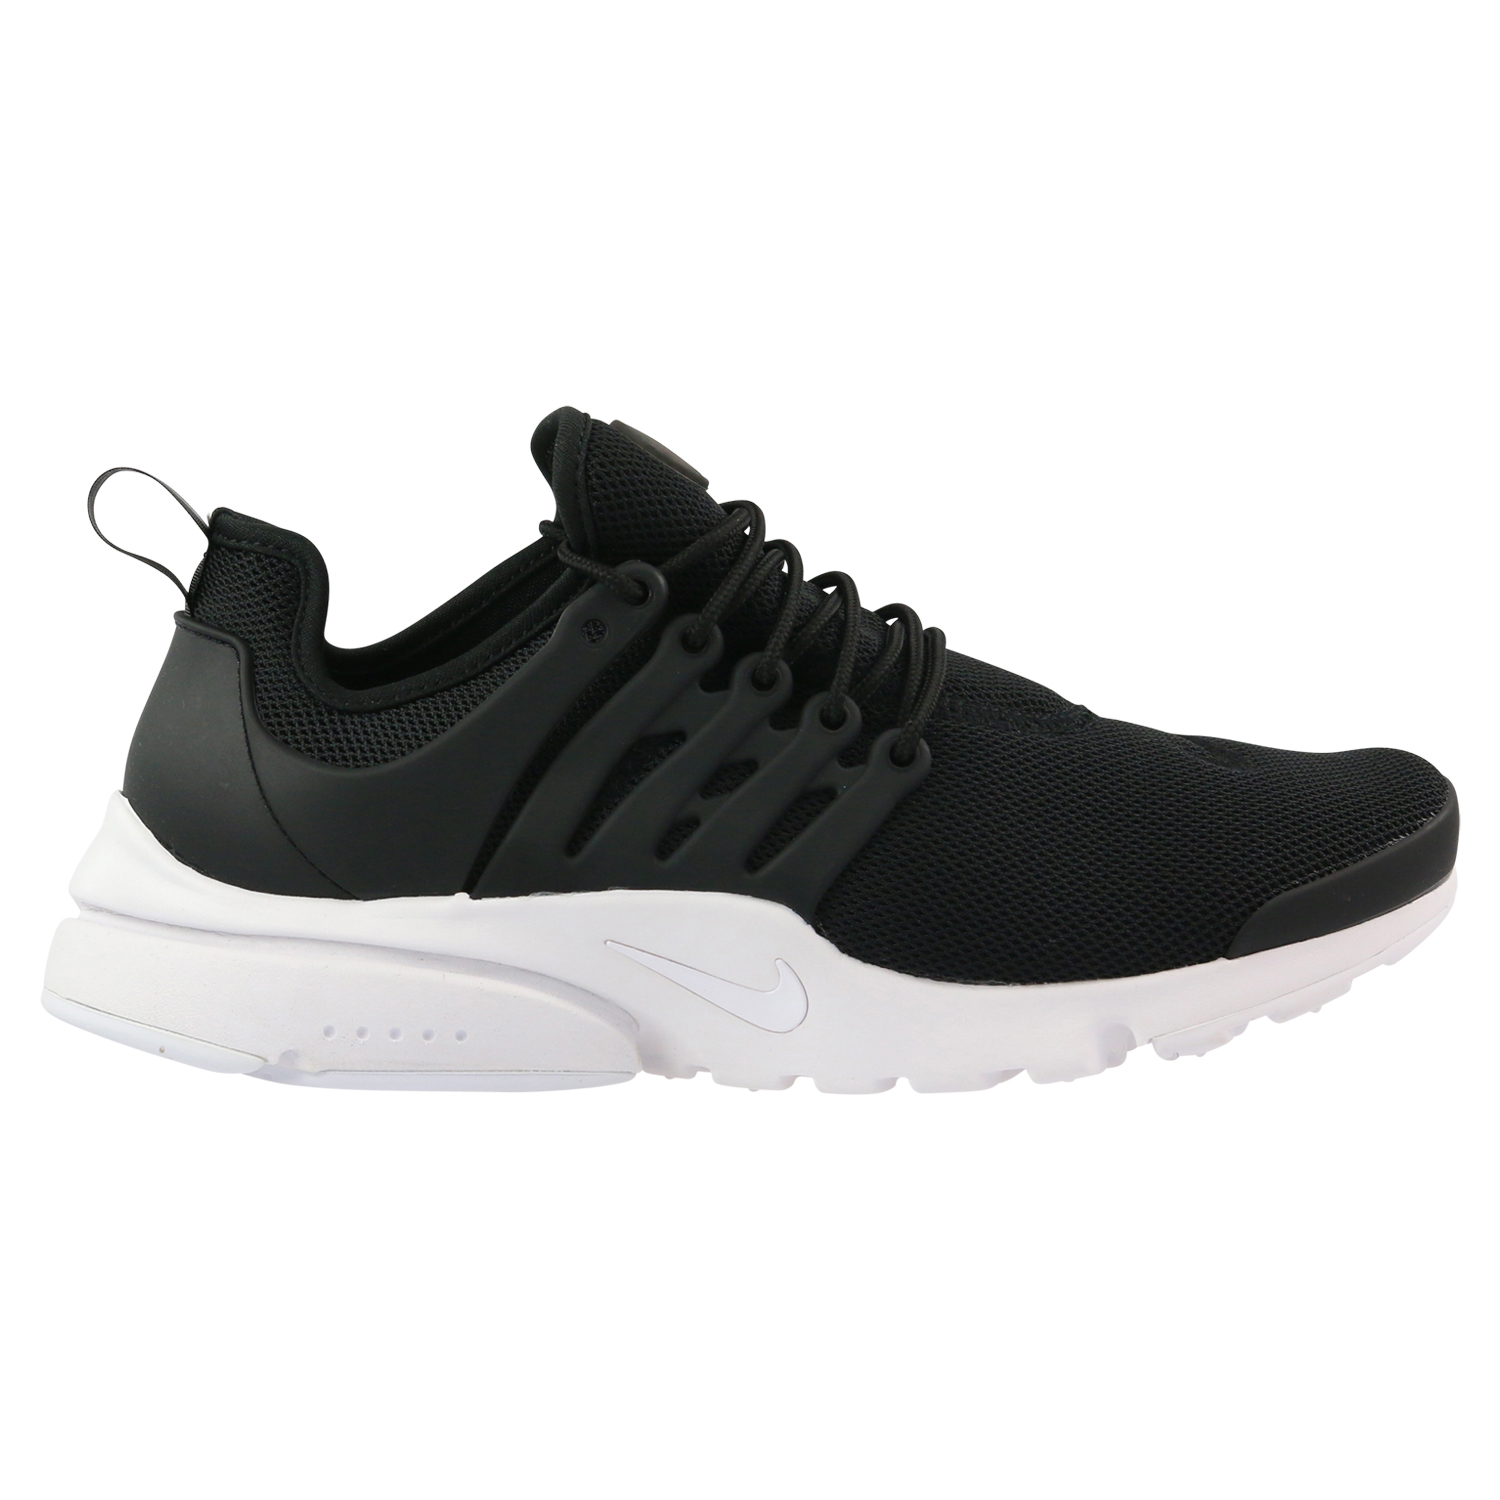 nike air presto fly se schuhe turnschuhe sneaker damen ebay. Black Bedroom Furniture Sets. Home Design Ideas